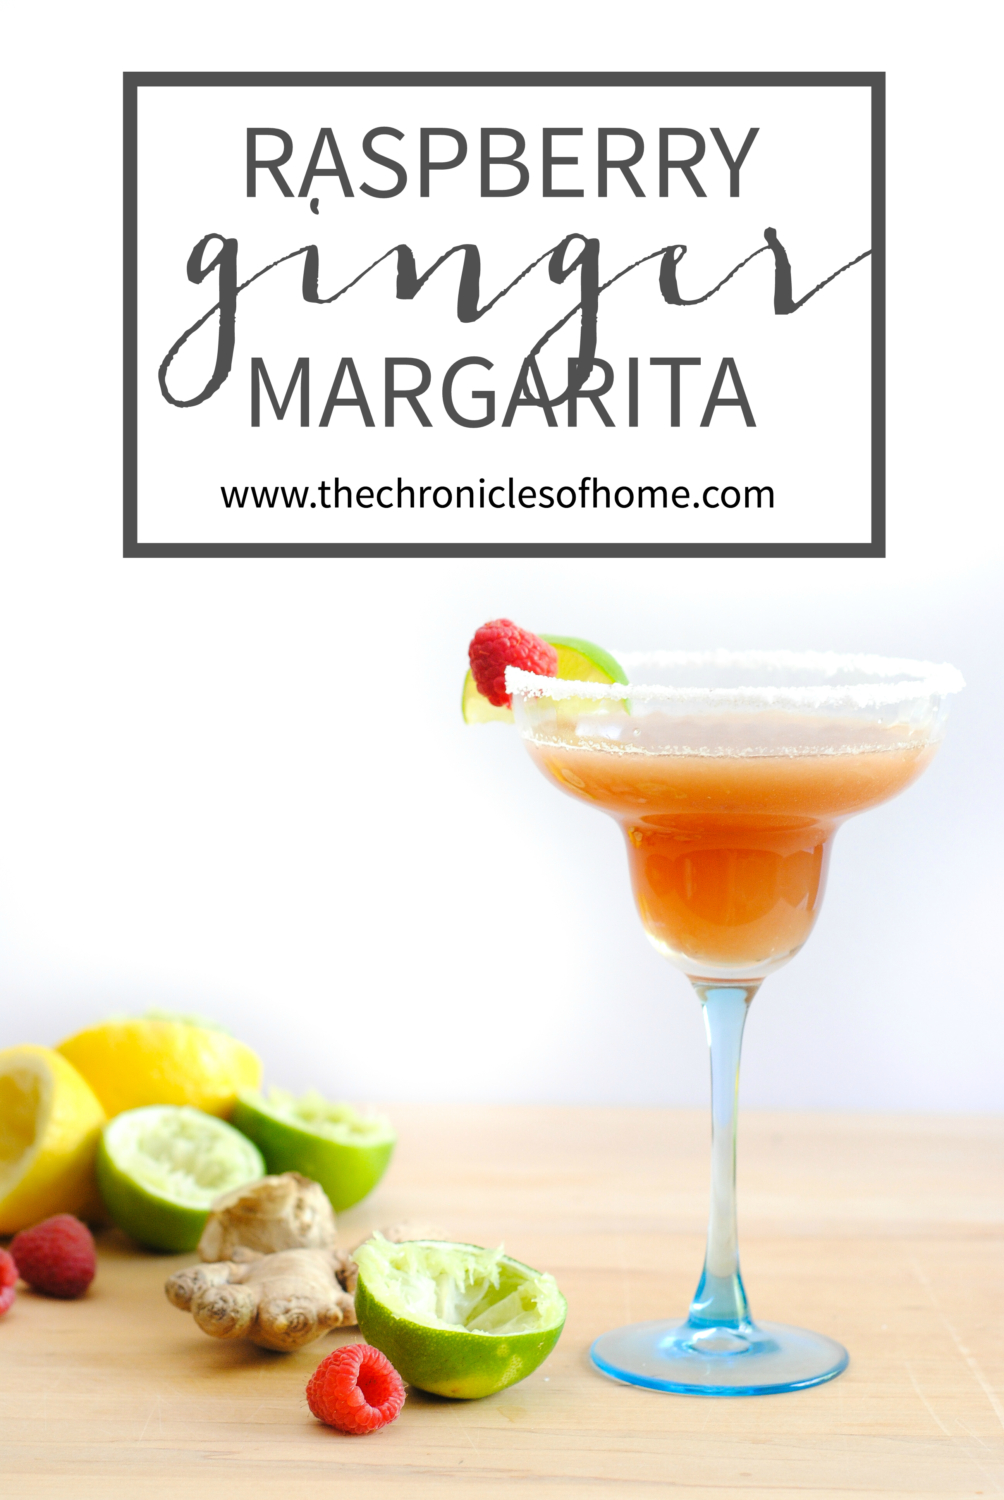 Raspberry ginger margarita - a subtly spicy twist on a classic margarita. You'll never go back to bottled mix once you taste this!